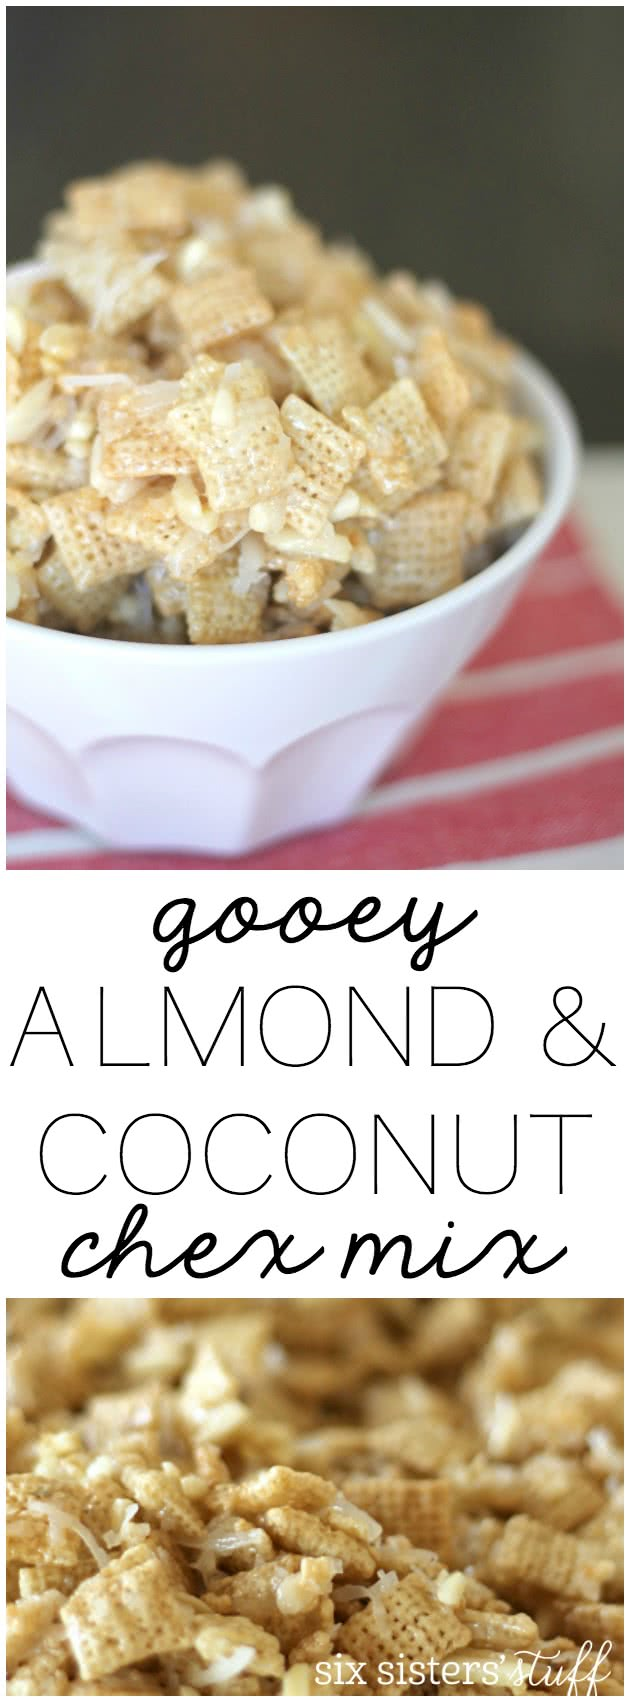 Gooey Almond & Coconut Chex Mix from SixSistersStuff.com. Perfect for holiday parties or neighbor gifts!